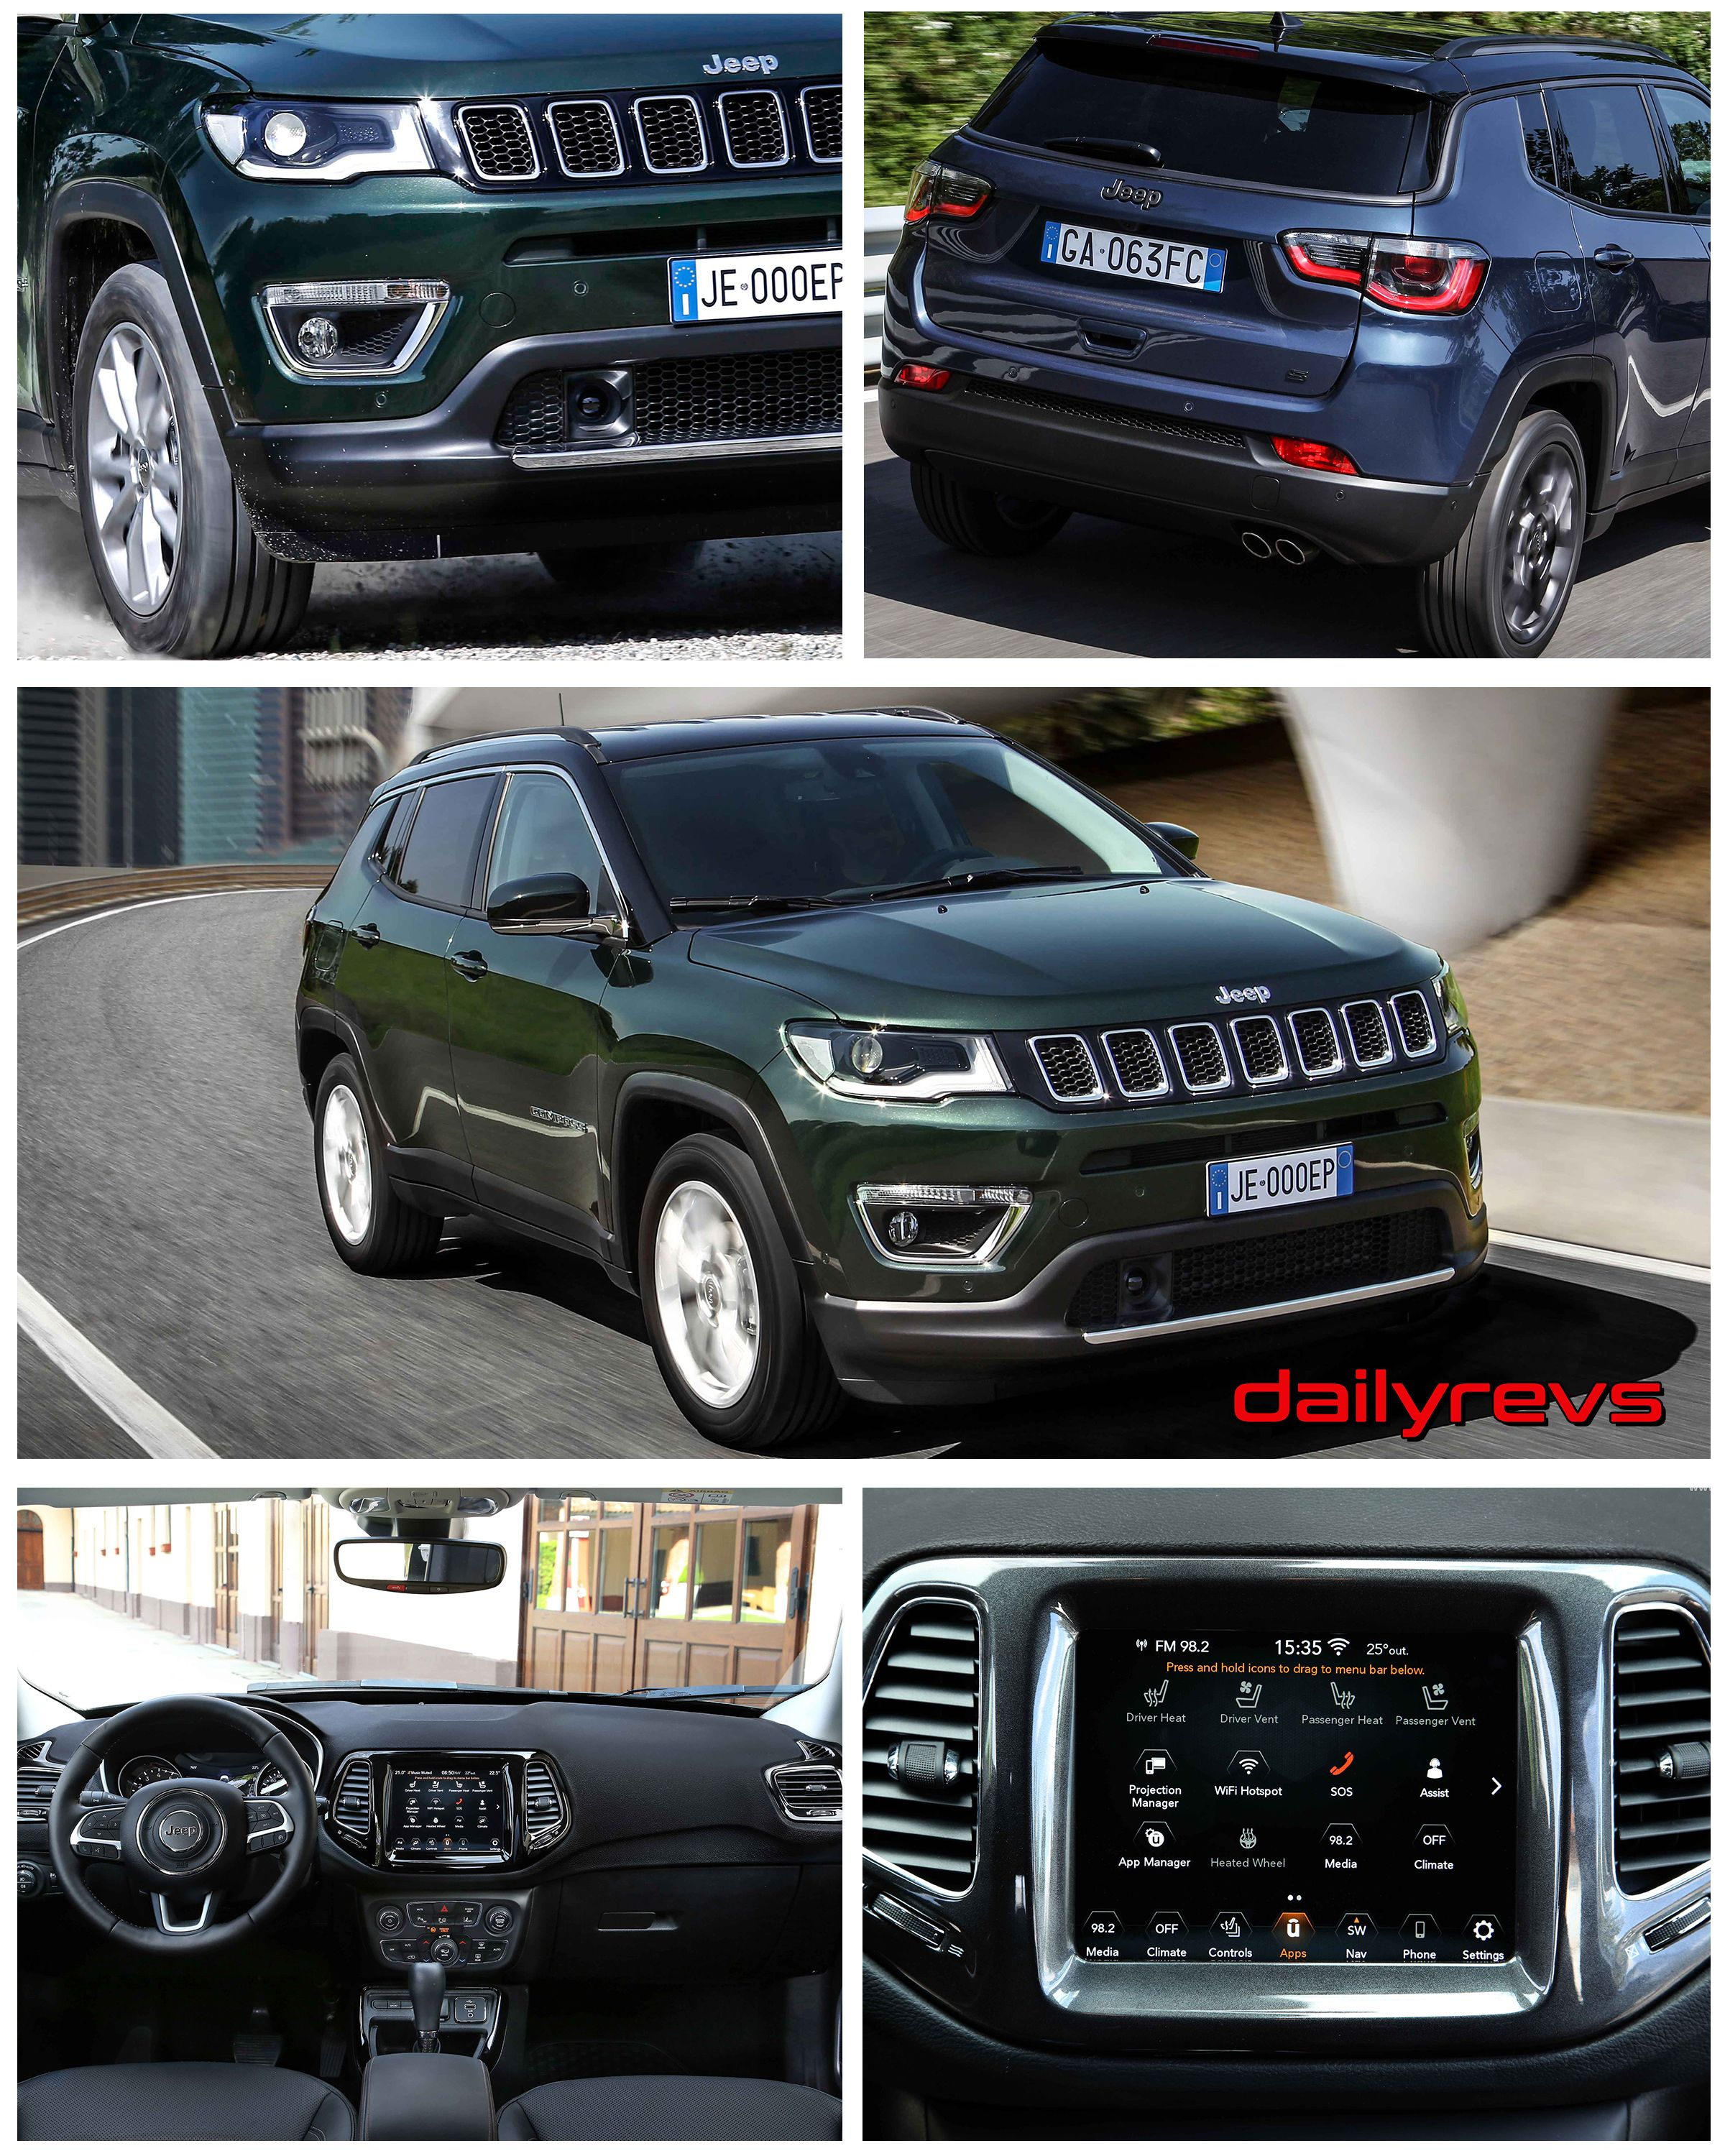 2020 Jeep Compass Dailyrevs Com In 2020 Jeep Compass Jeep